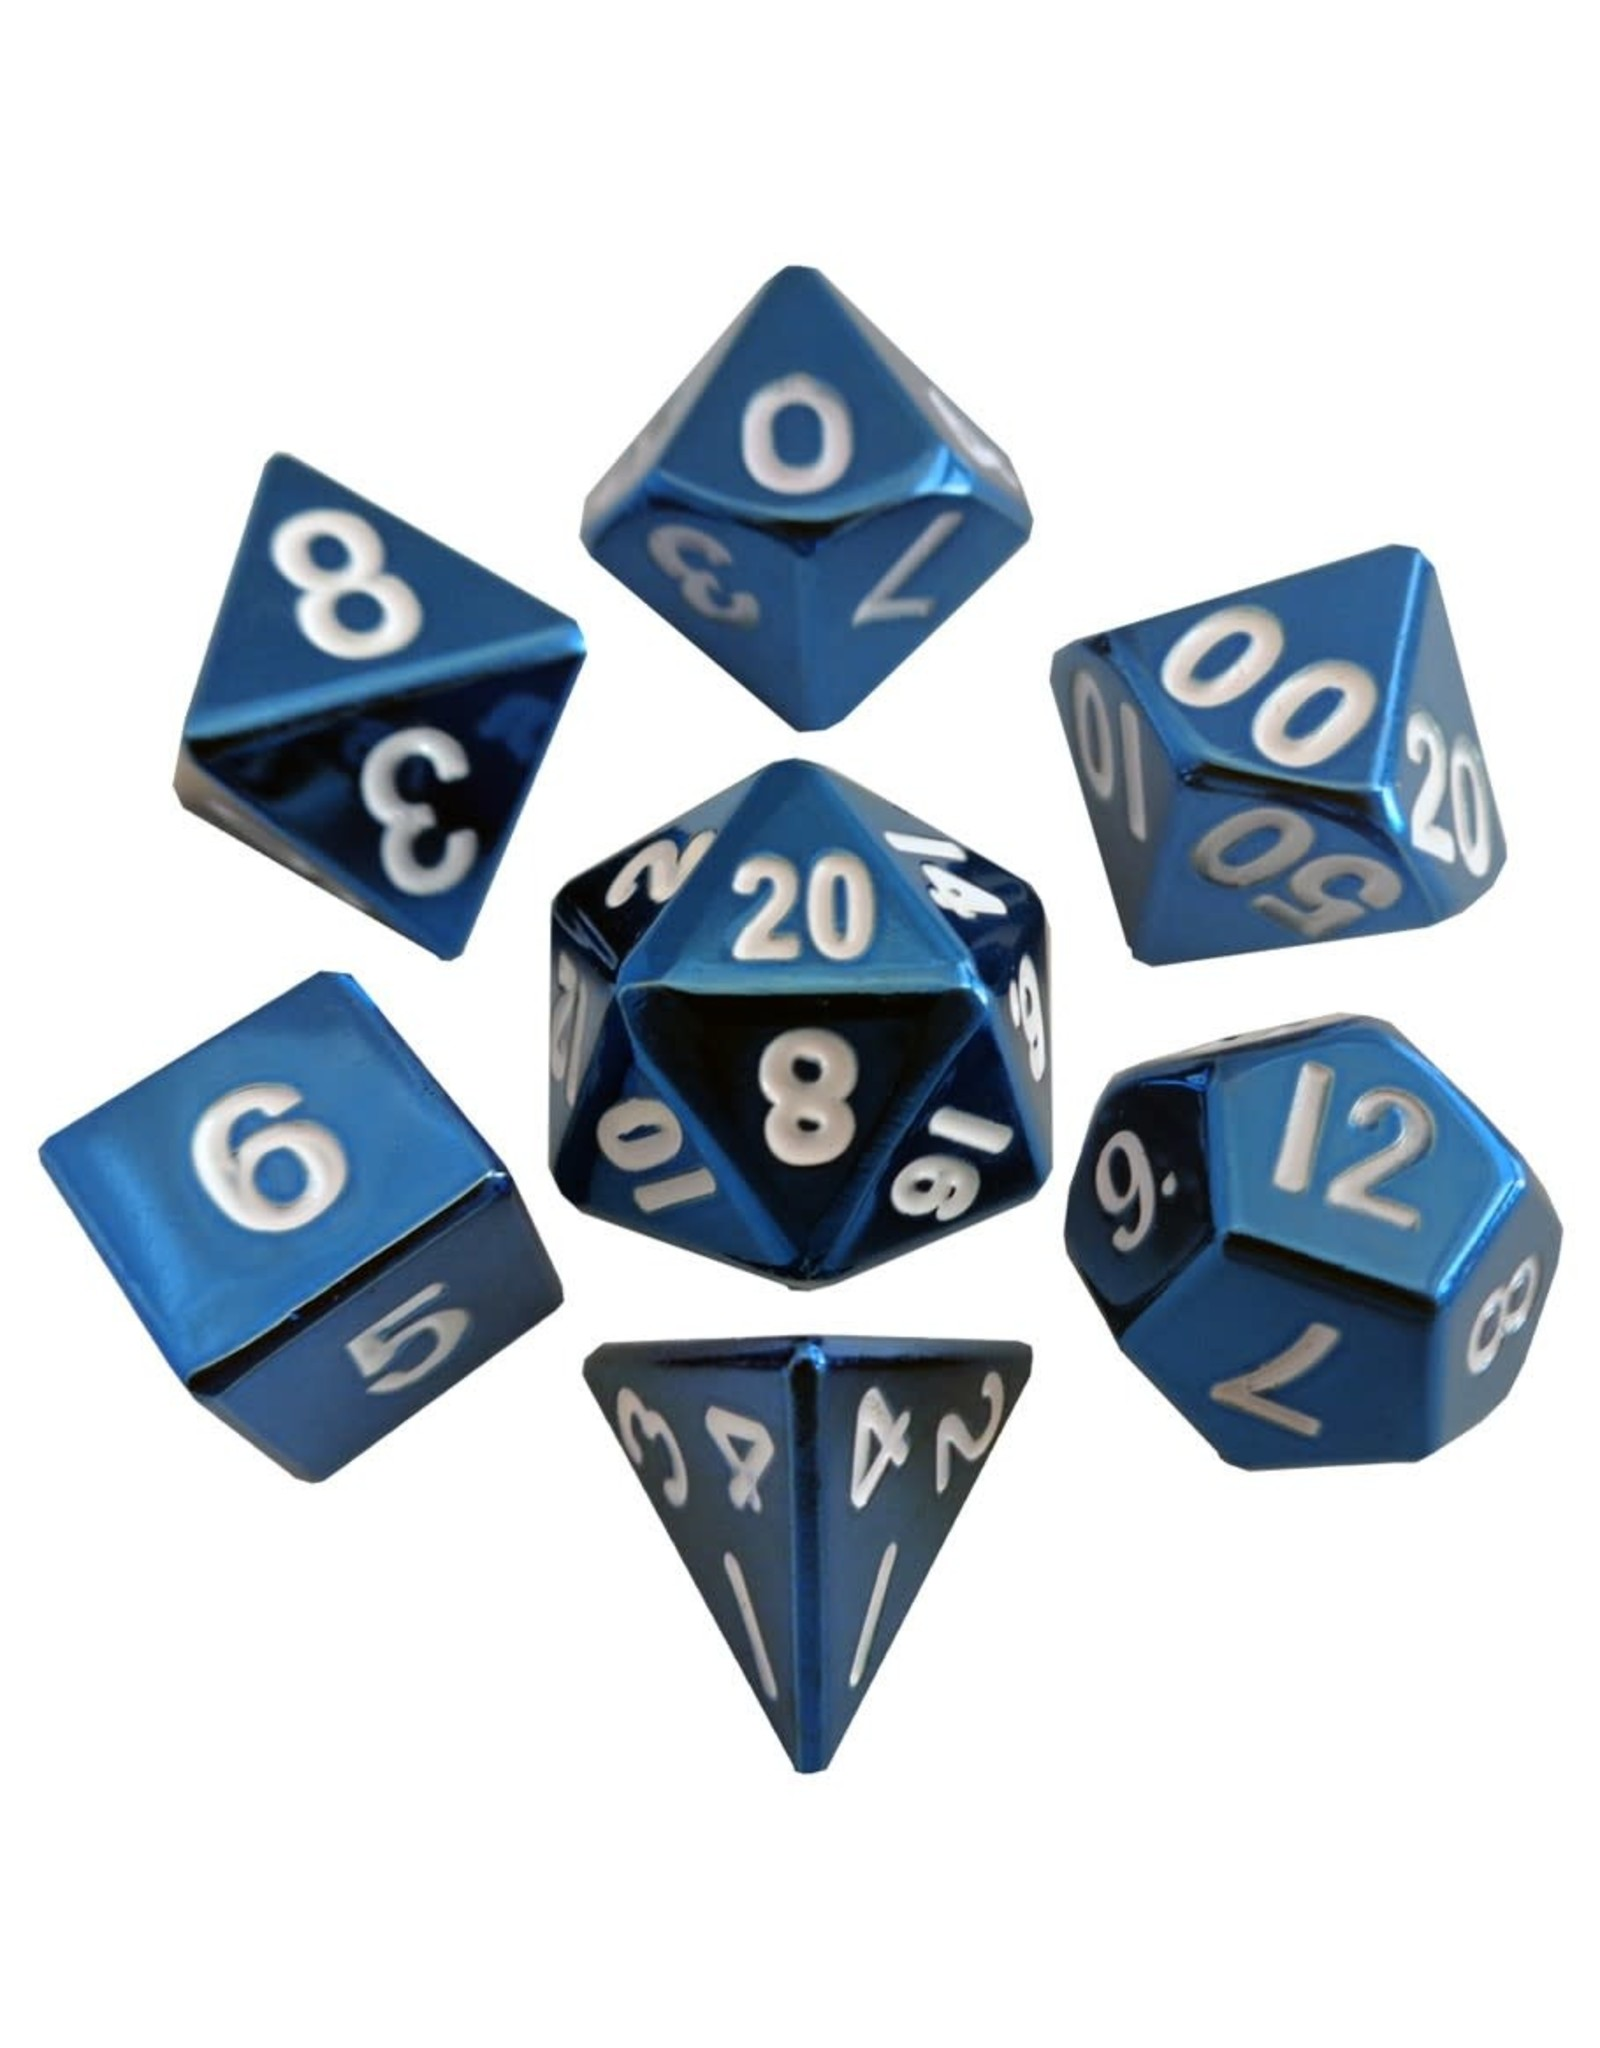 7 Die Set: 16mm: BU Painted Metal